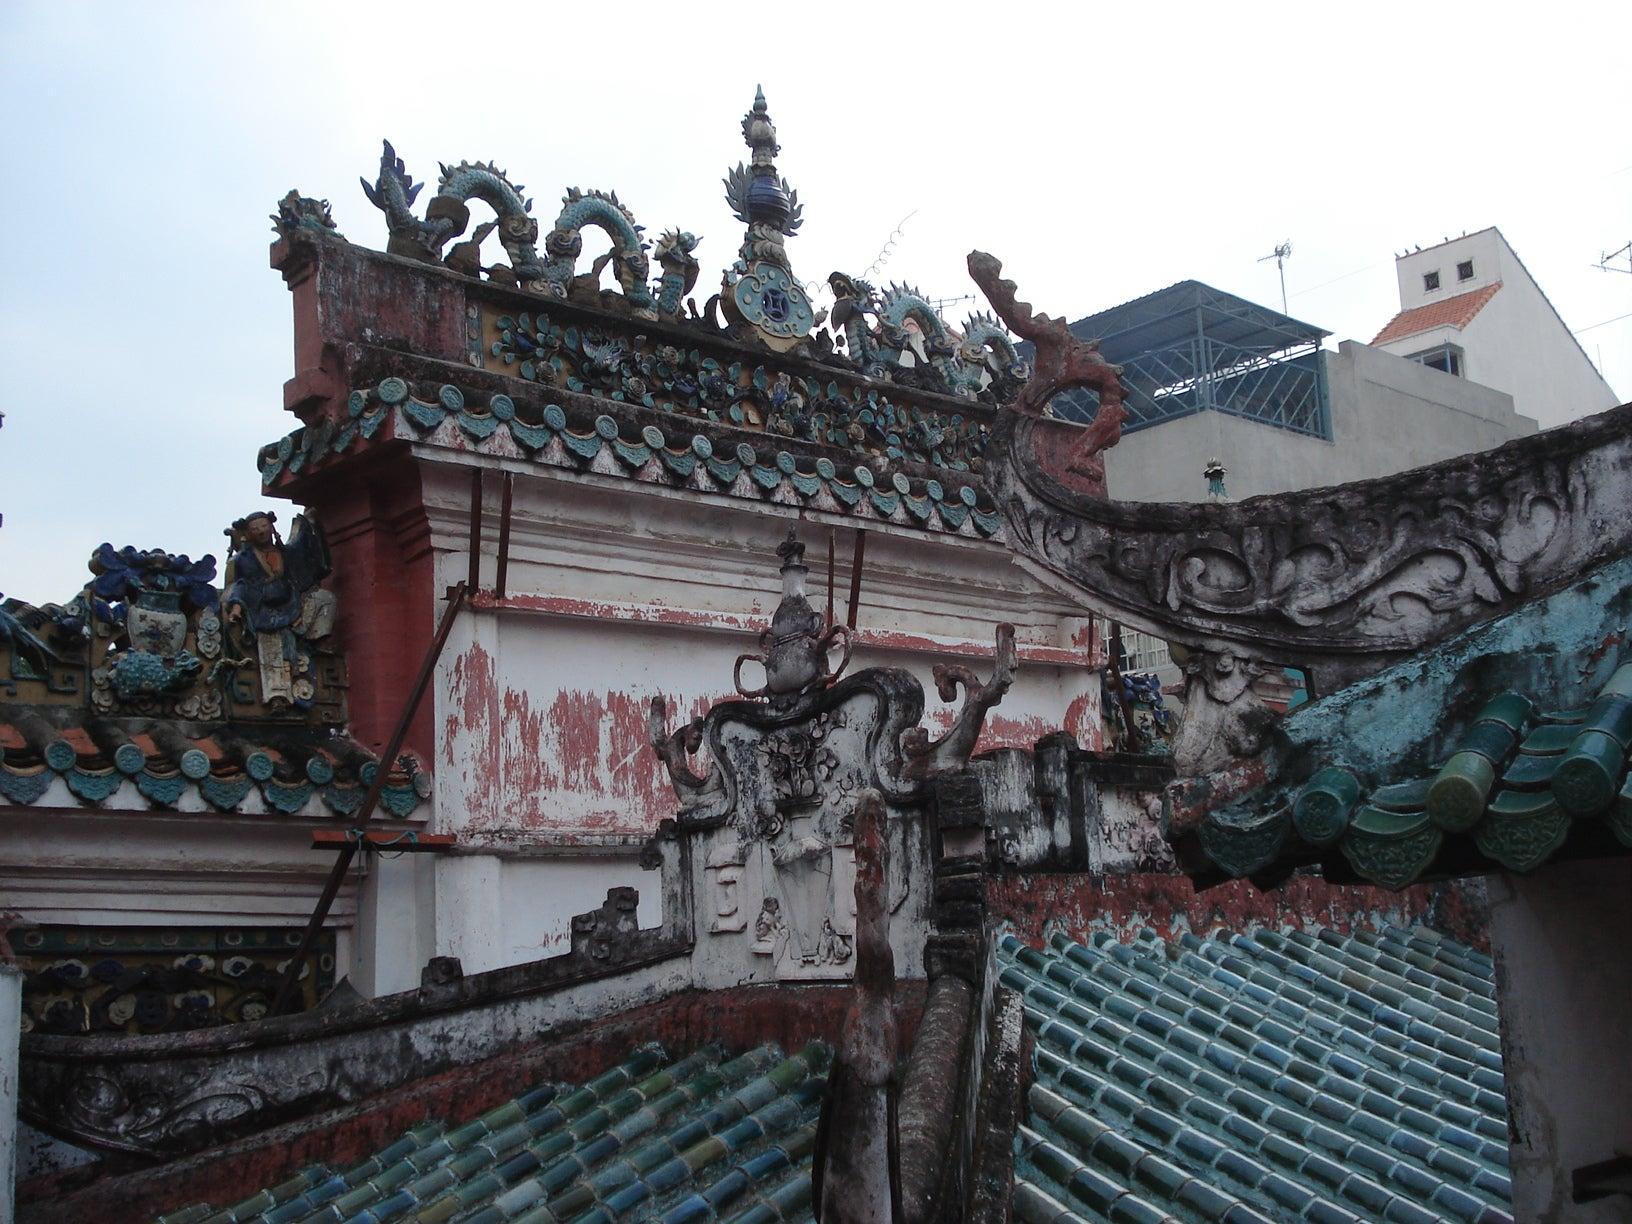 Pagoda of the Jade Emperor